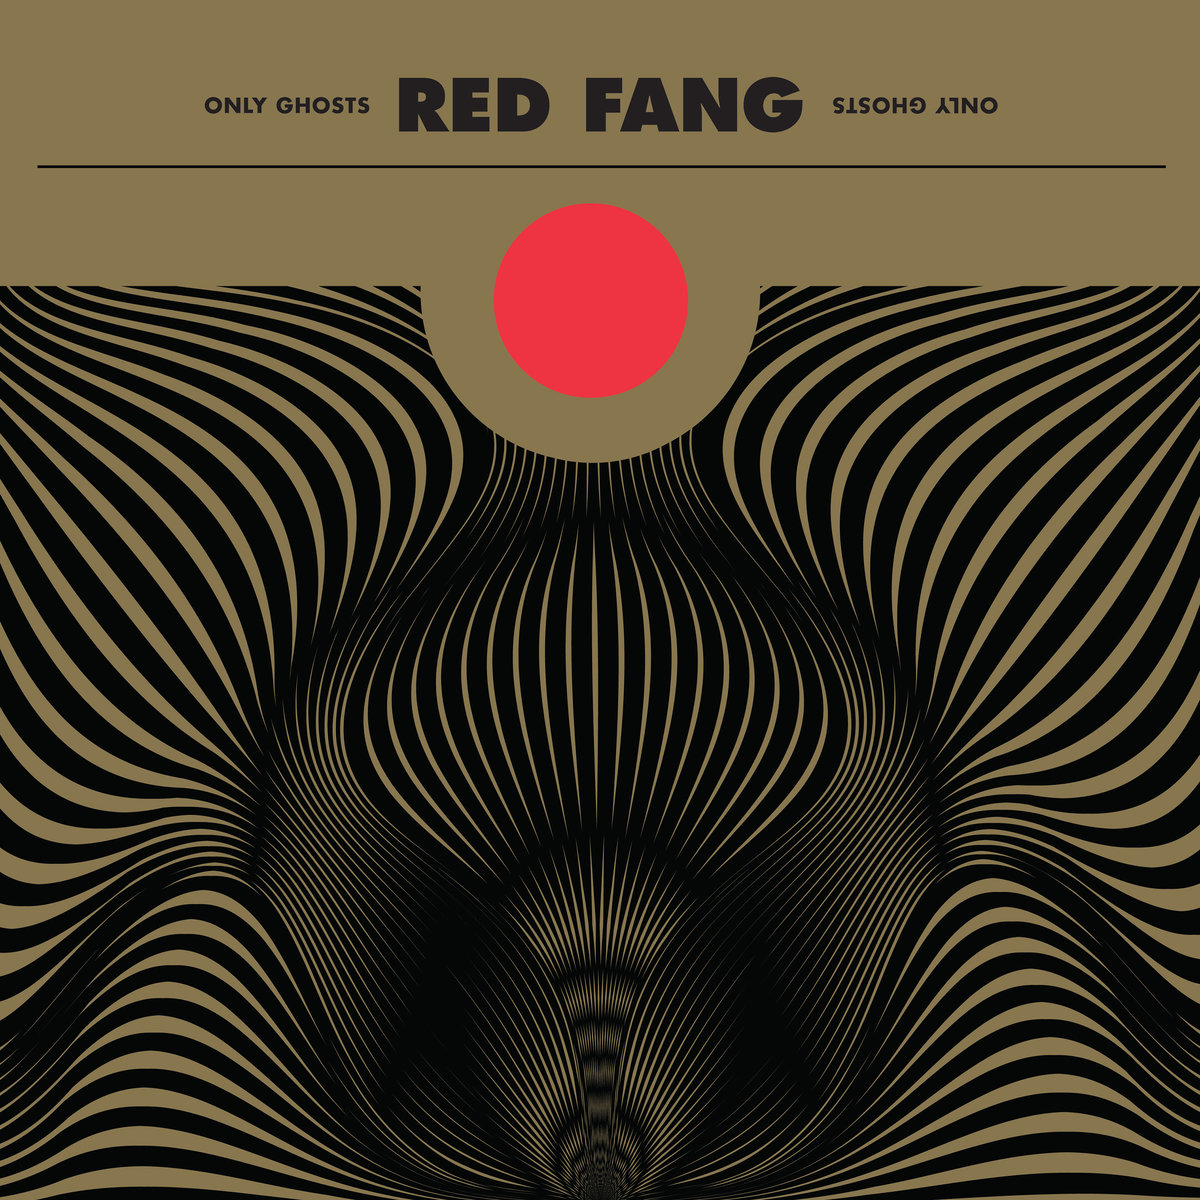 red-fang-only-ghosts.jpg